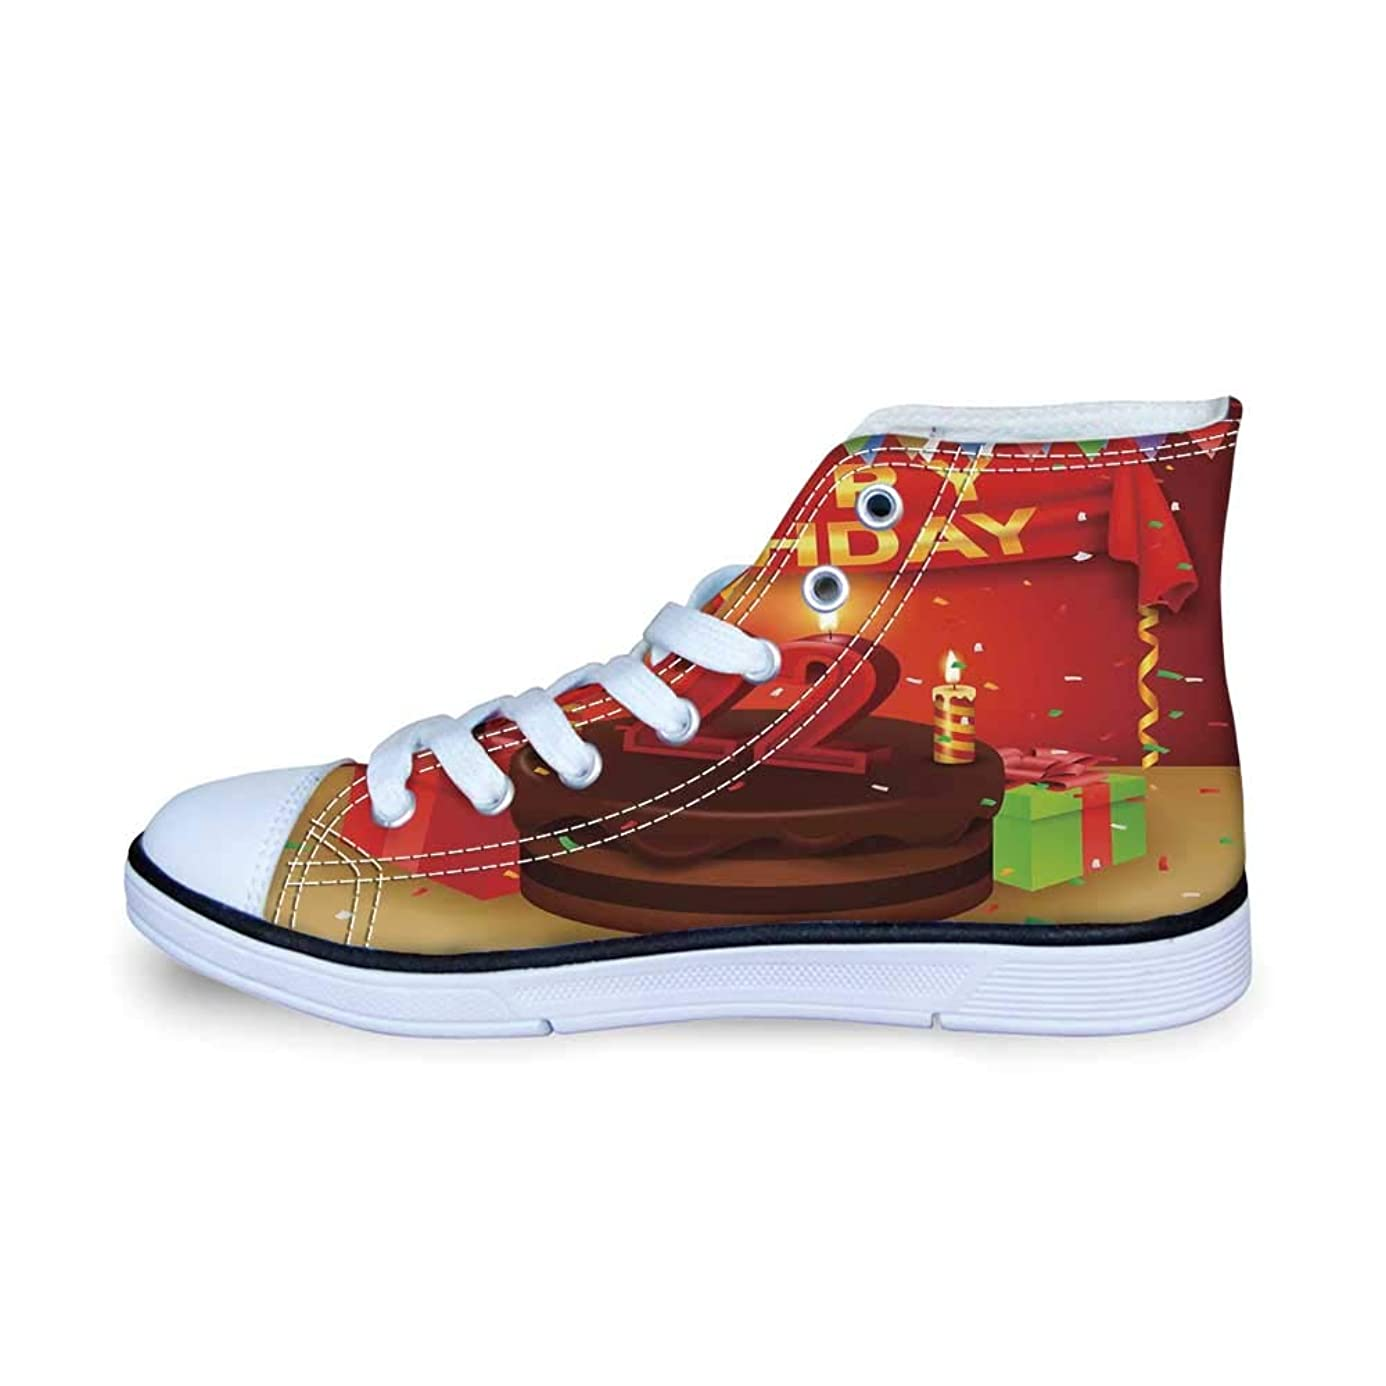 22nd Birthday Decorations Comfortable High Top Canvas Shoes,Birth Greetings Celebrate Your New Age Retro Style Design for Boys,EU29